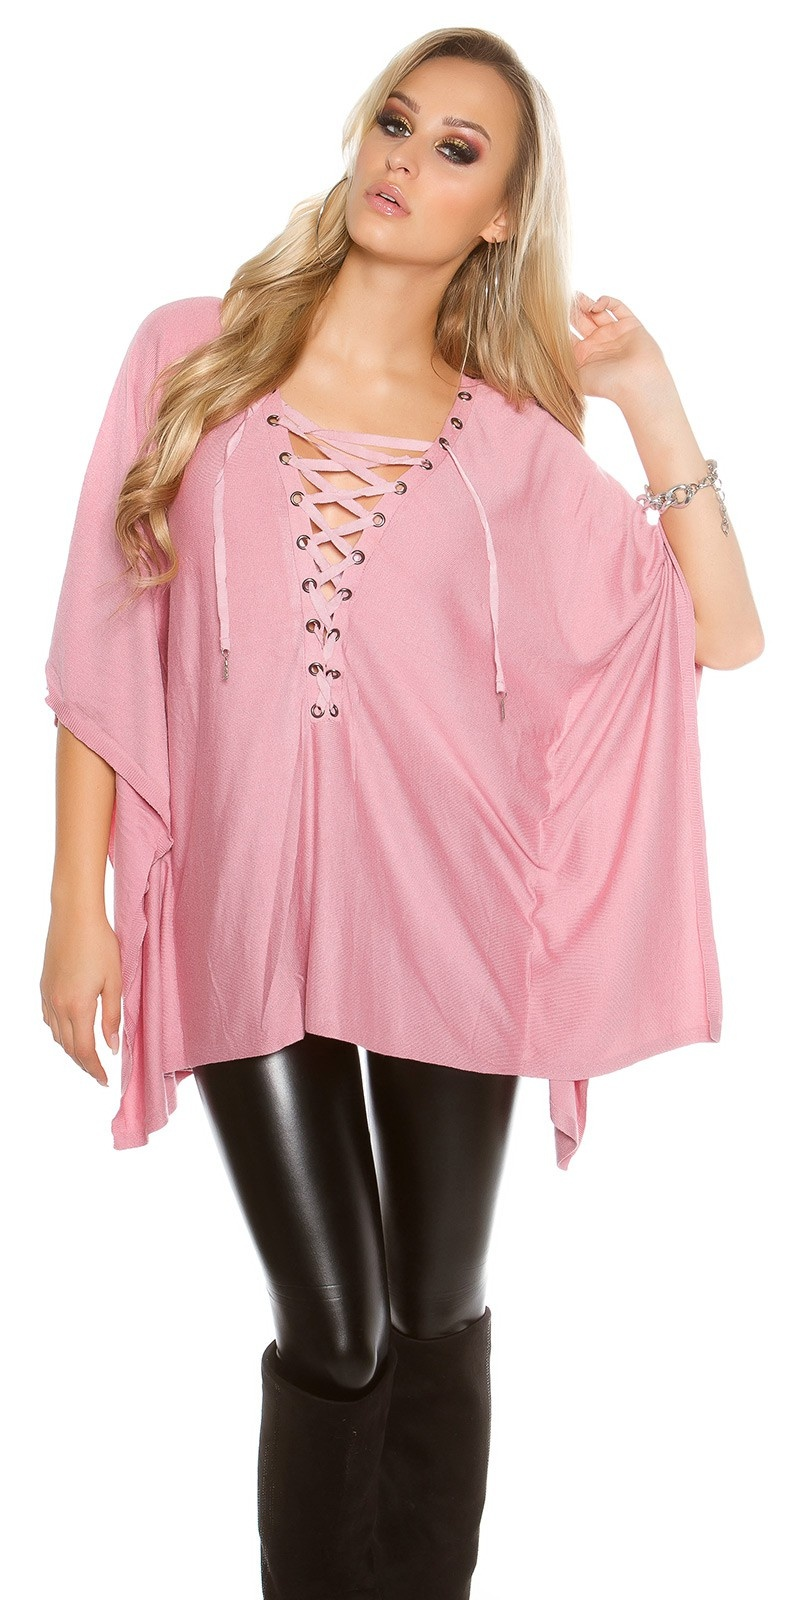 Trendy KouCla bat - poncho look jumper Antiquepink